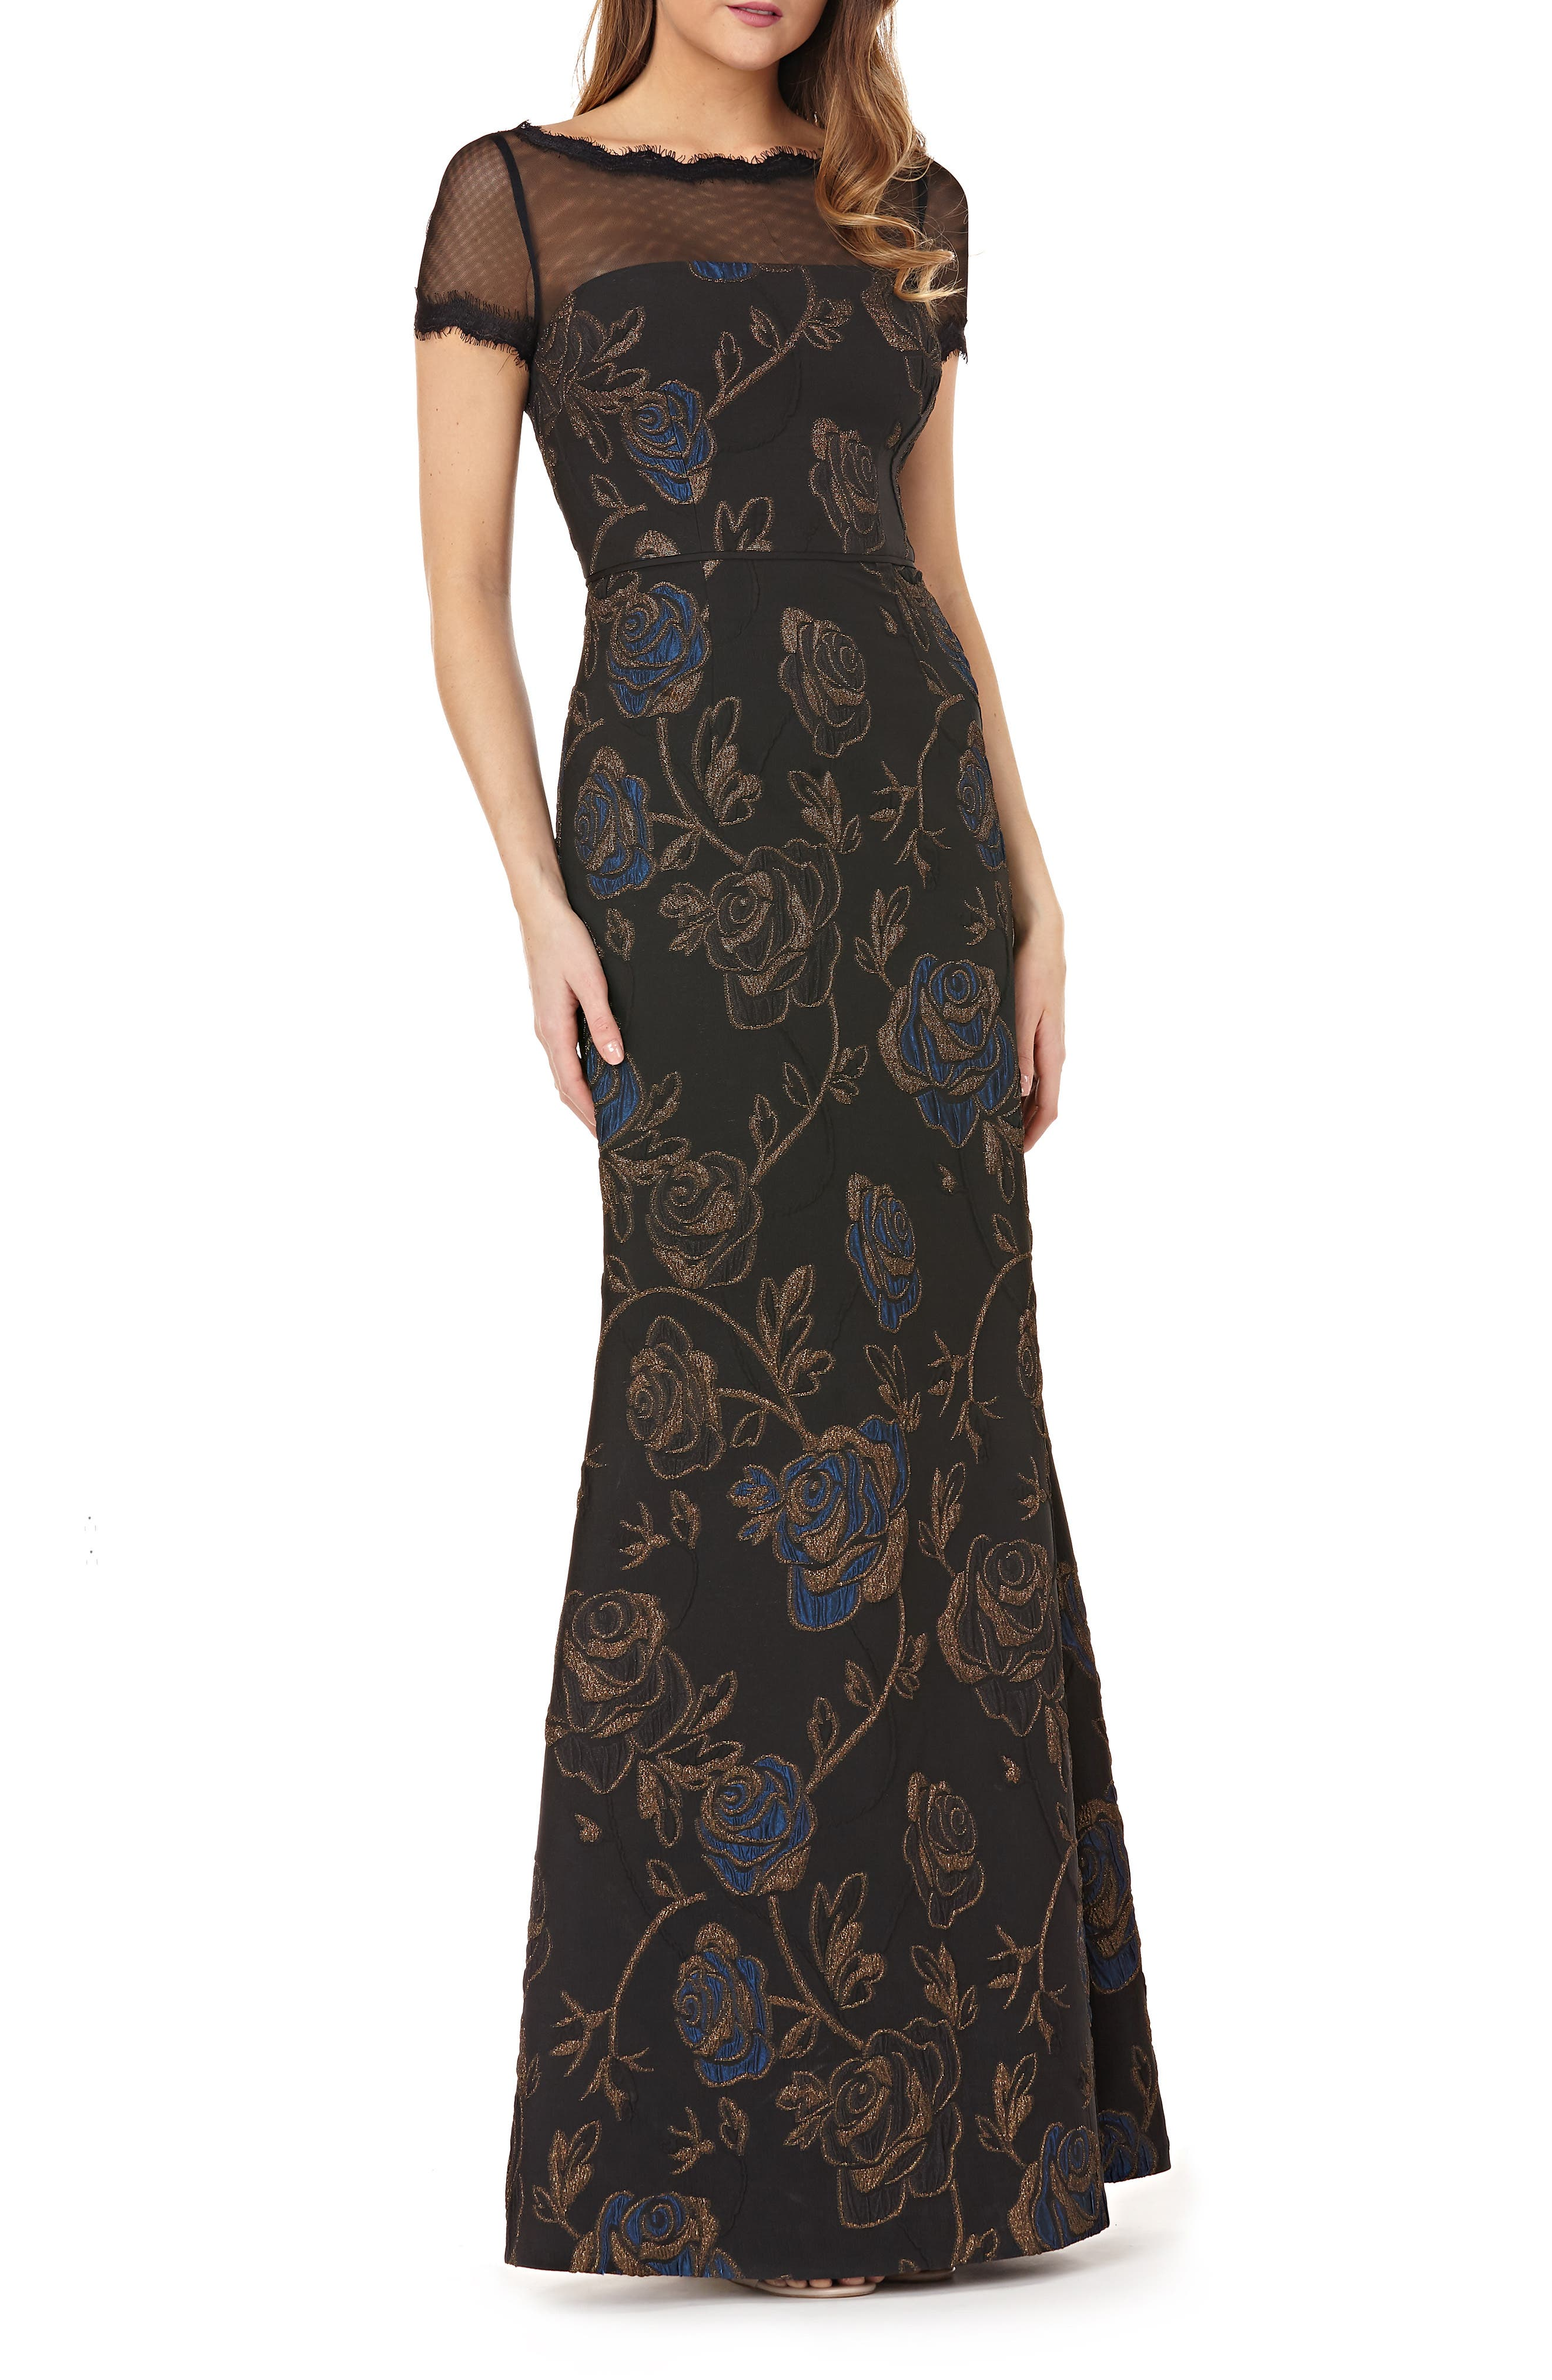 JS COLLECTIONS Boat-Neck Short-Sleeve Floral Matelasse Illusion Gown W/ Eyelash Trim in Black/Blue